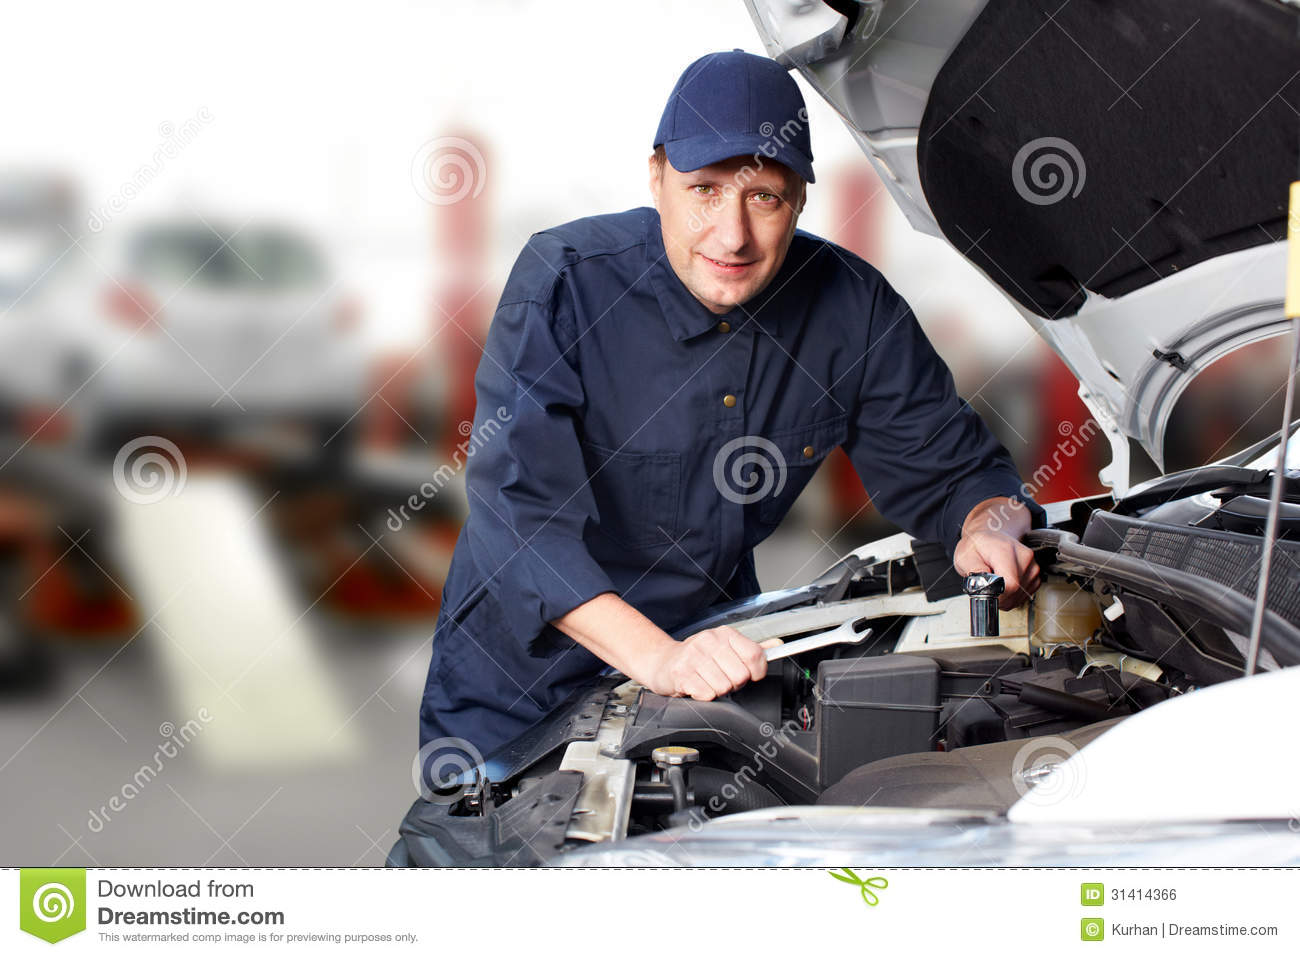 how to become a professional mechanic